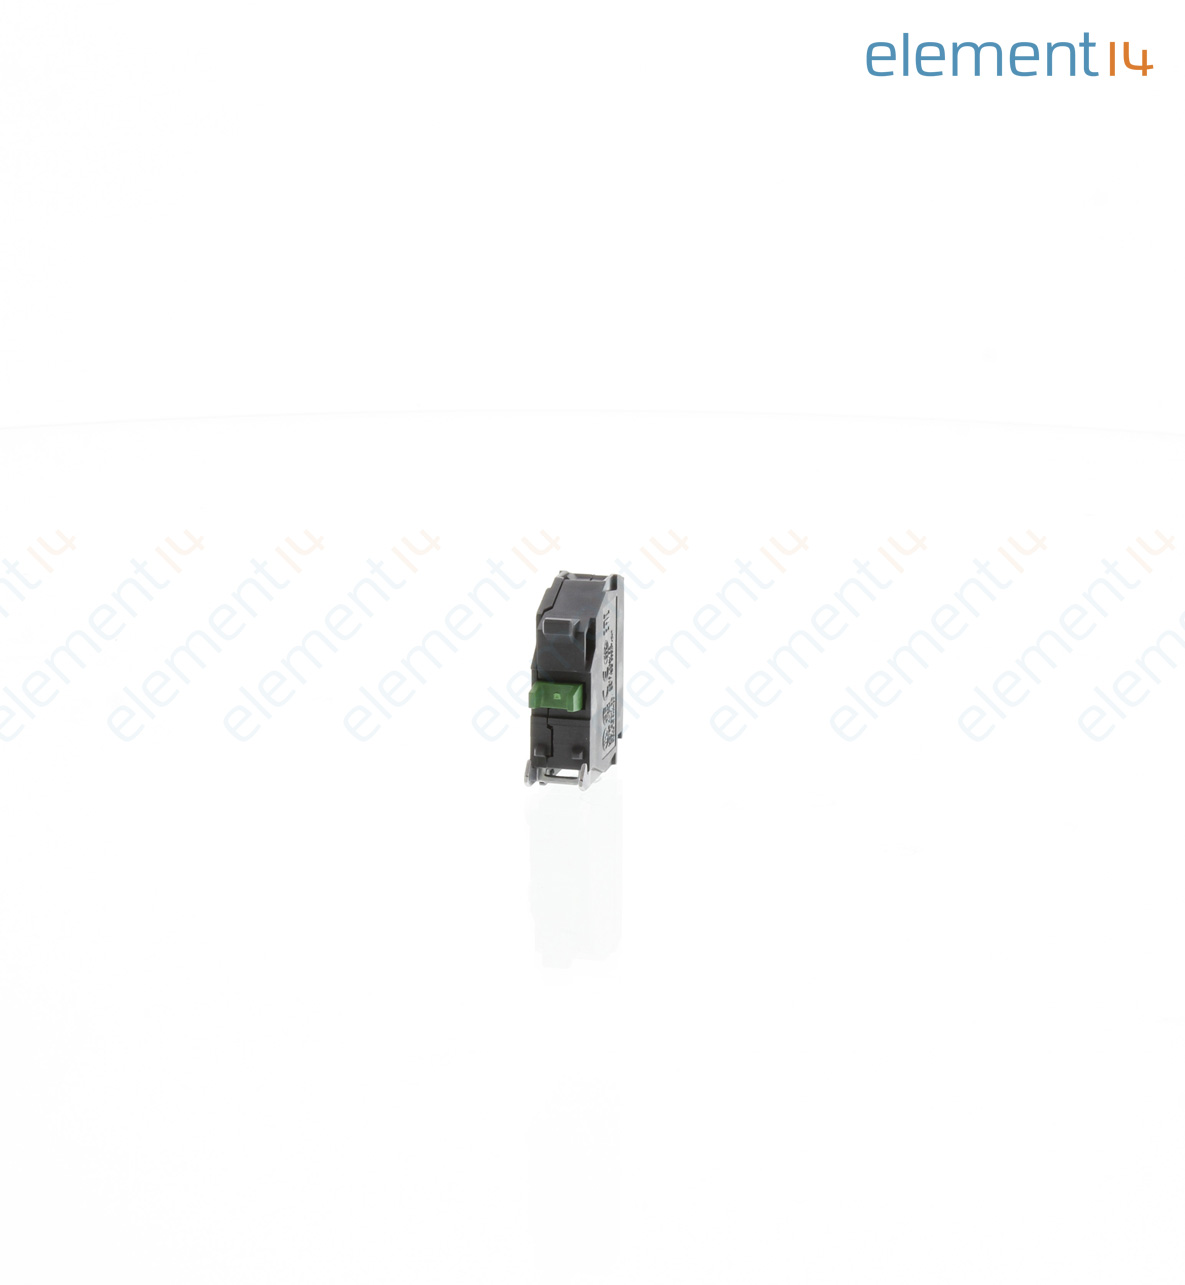 Zbe101 Schneider Electric Contact Block 10 A 600 V Diagram Of Multimeter Add To Compare